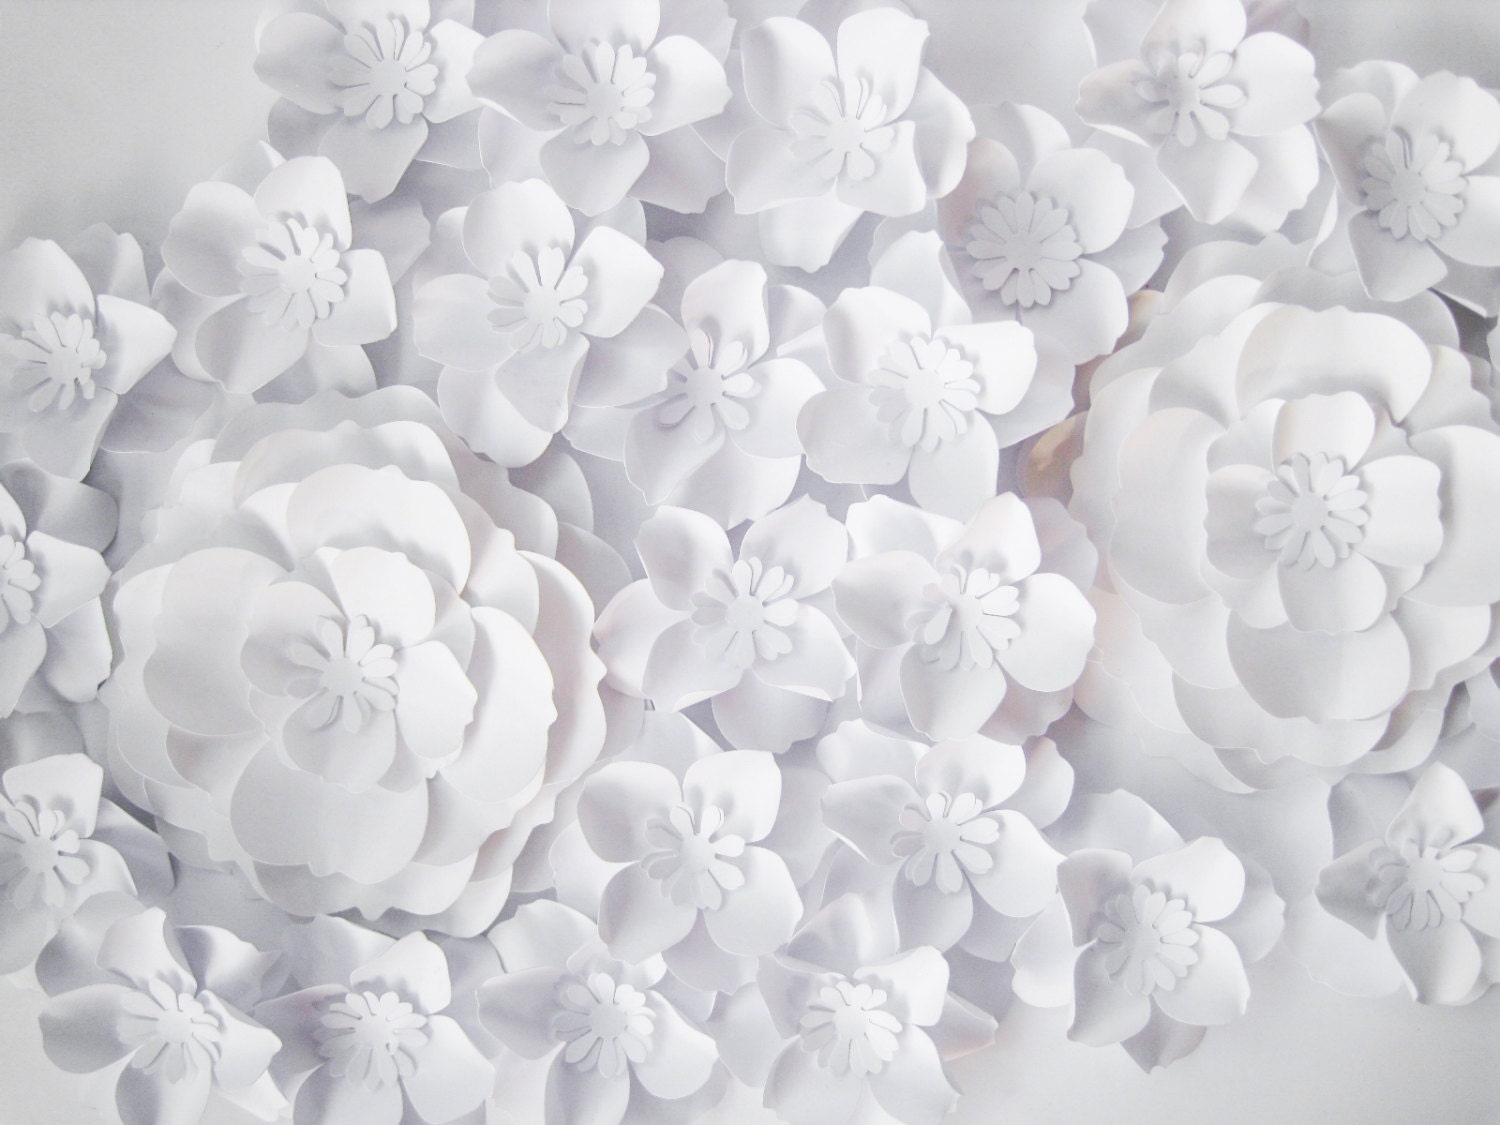 27 White Paper Flowers Backdrop Small Paper Flowers Nursery Flowers Large Paper Flowers Wall Paper Decor Wedding Backdrop Party Favors